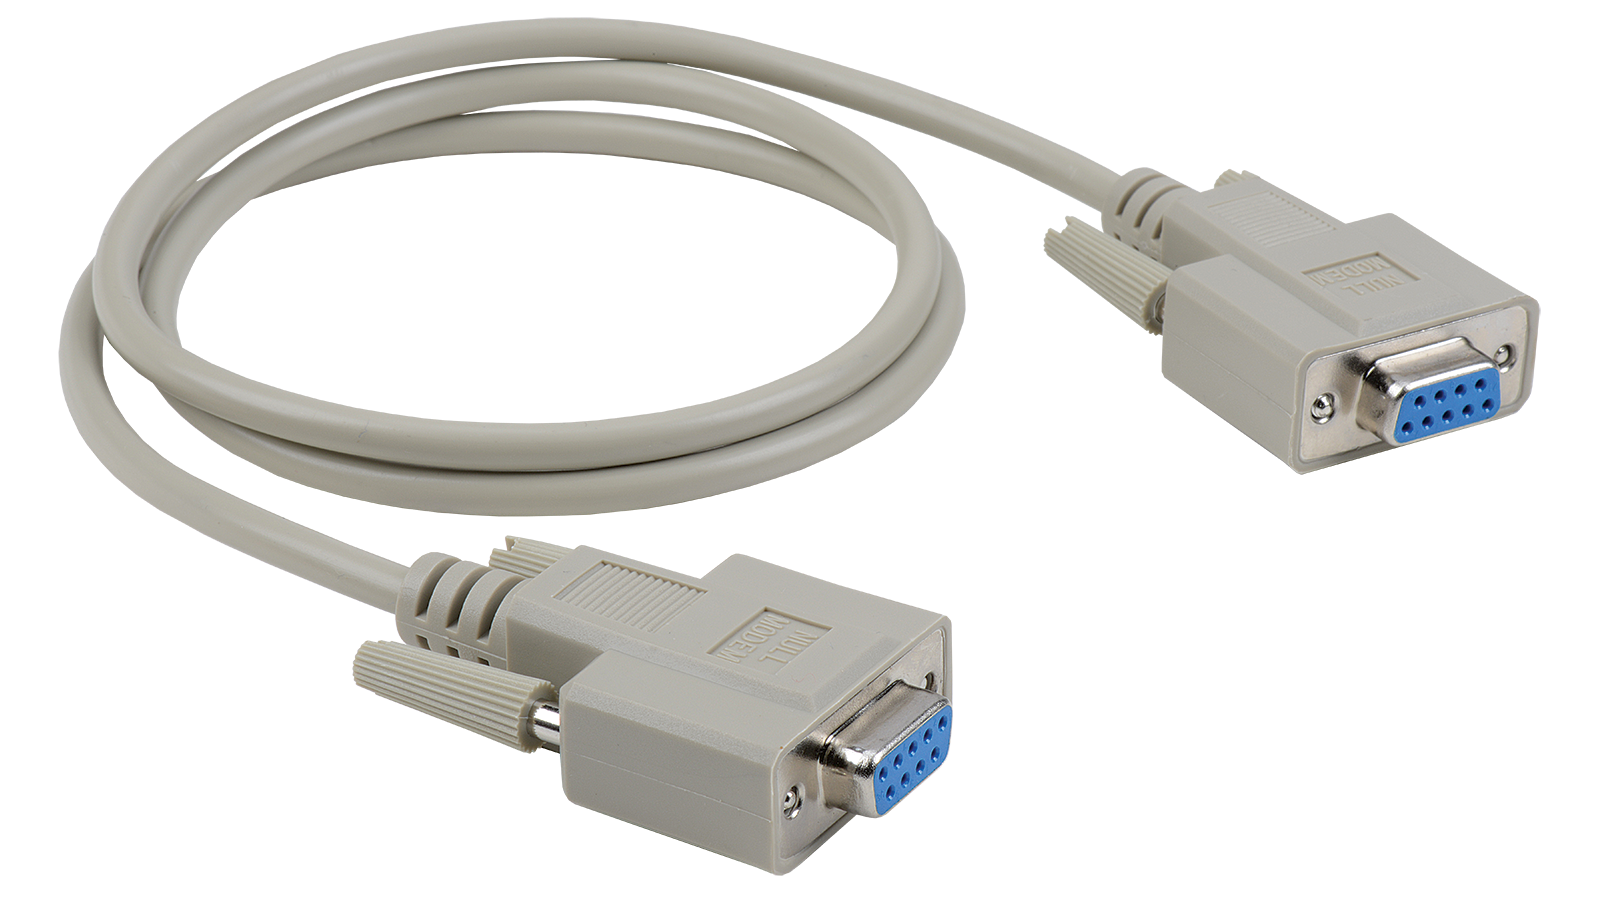 Economy Molded D-SUB DB9 female to female null modem cable ...